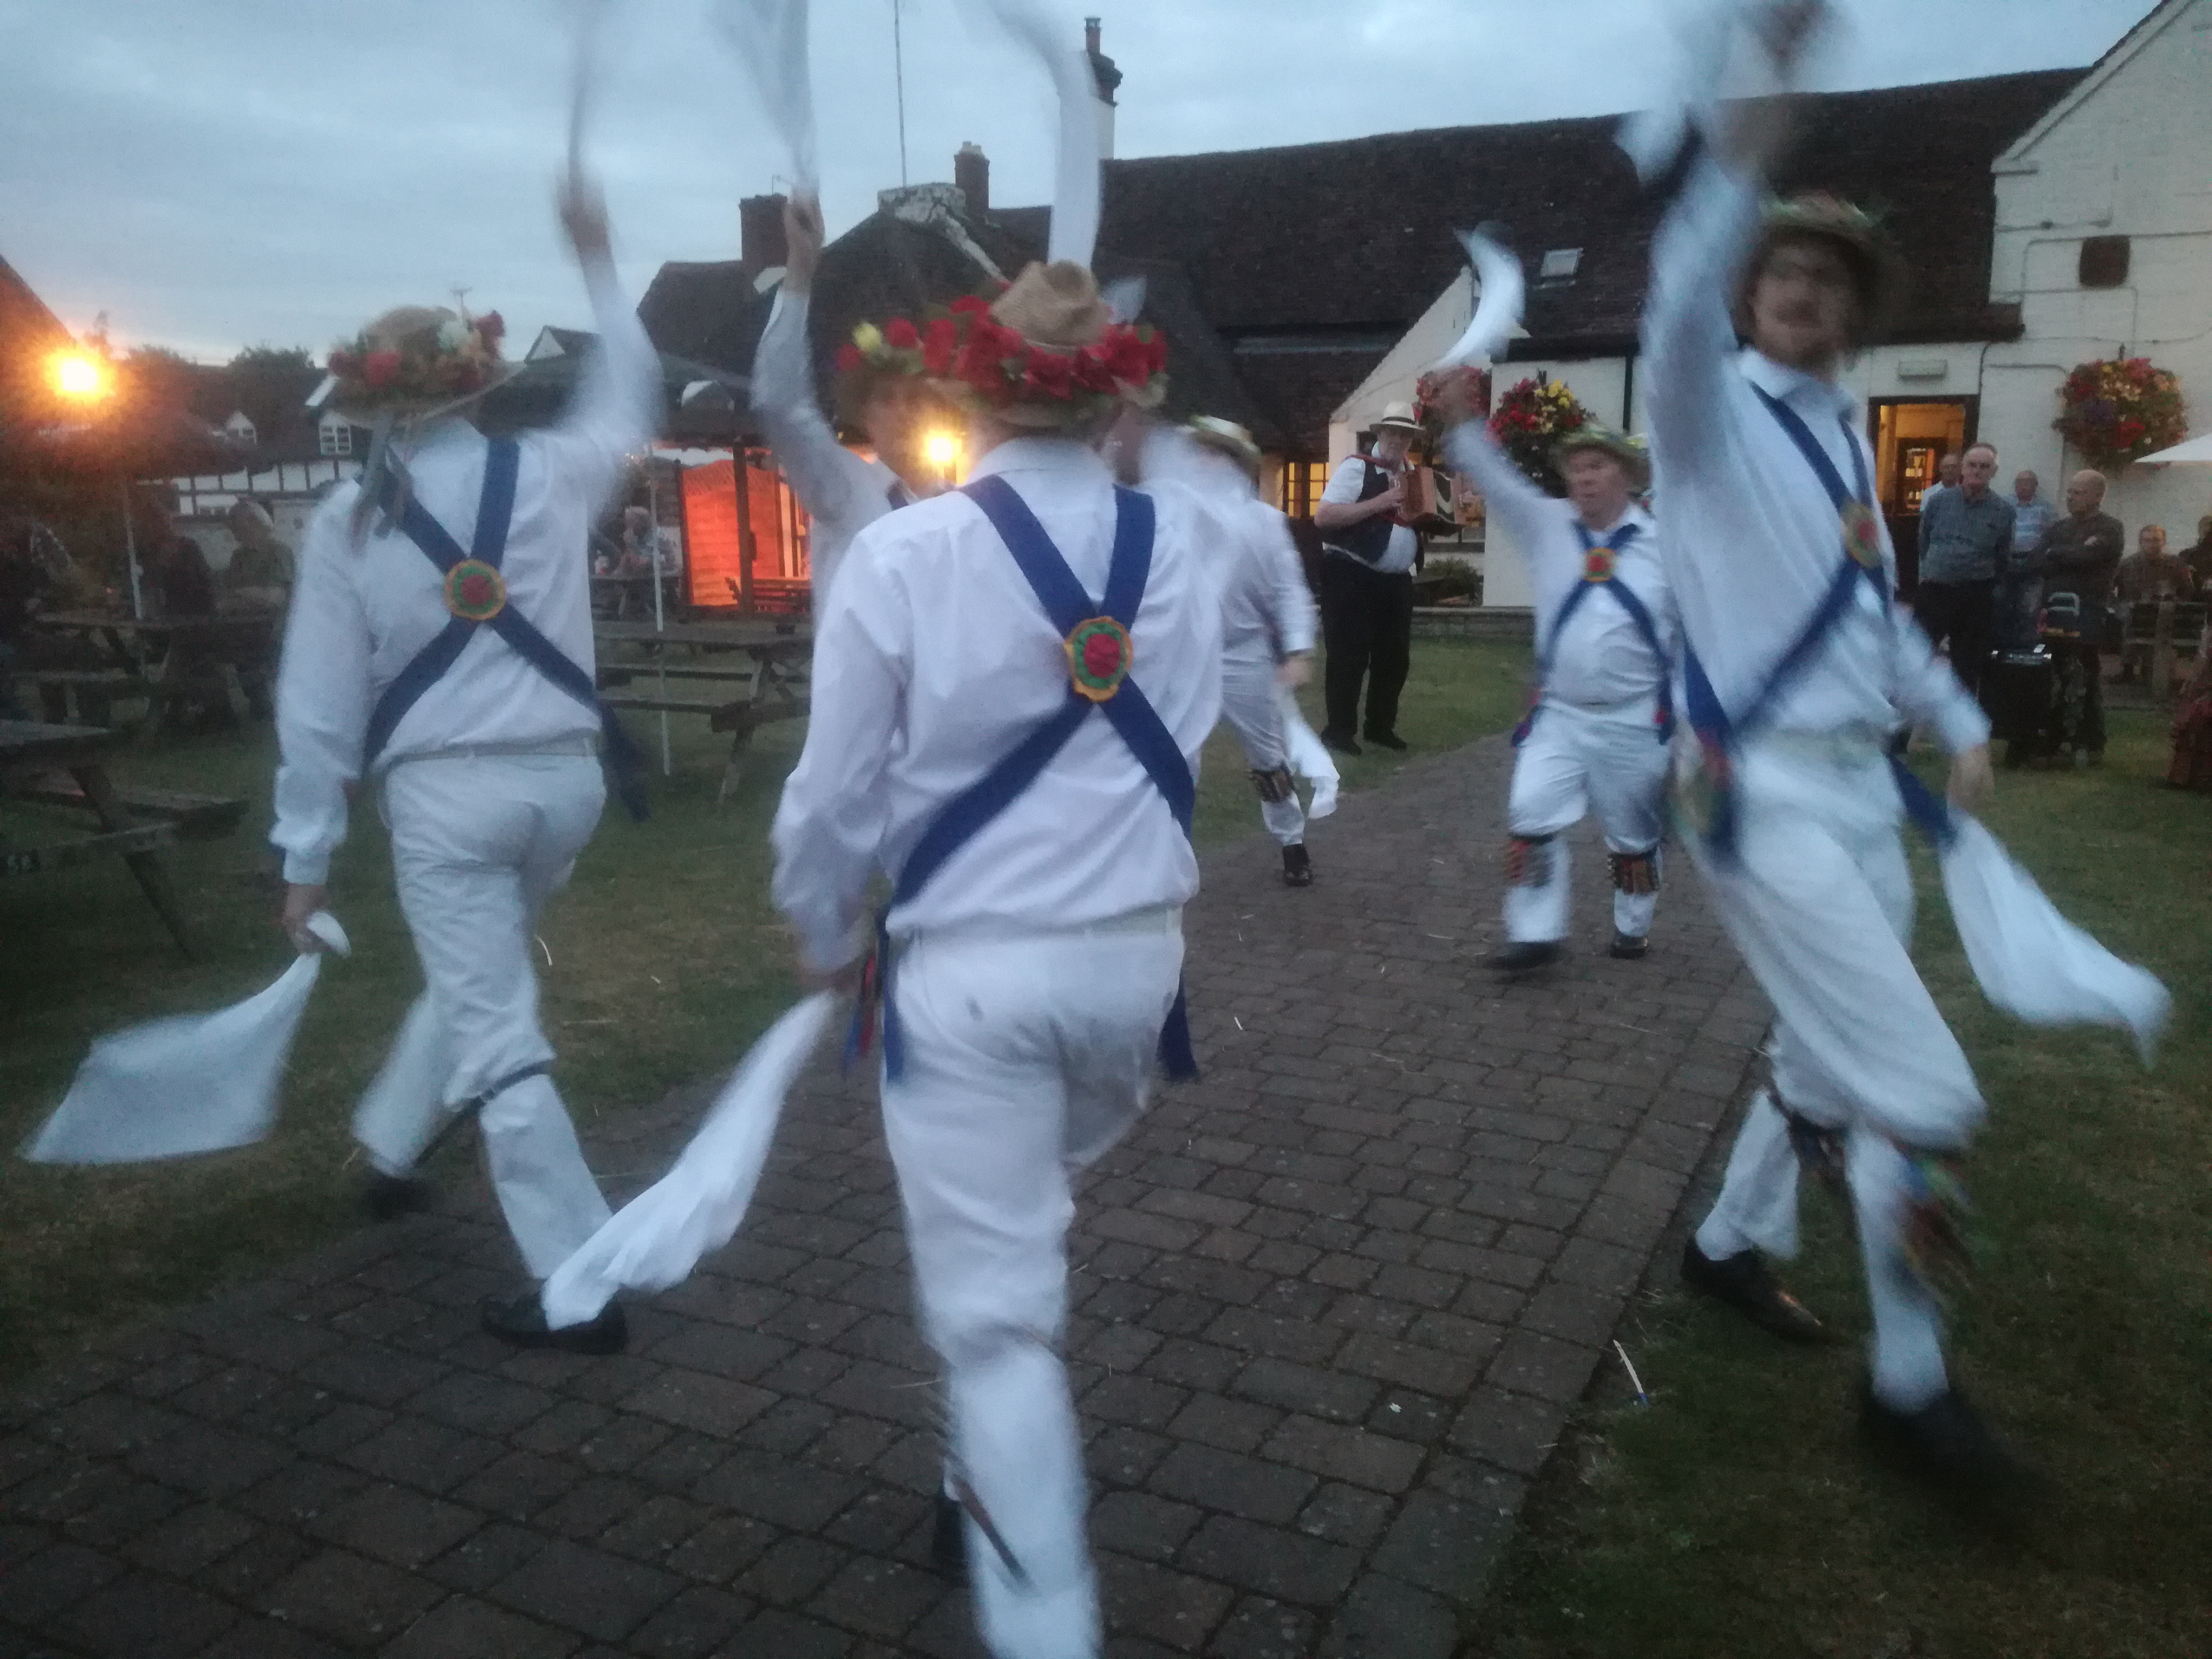 At The Swan with Bedcote Morris - Chaddersley Corbett - 20th July